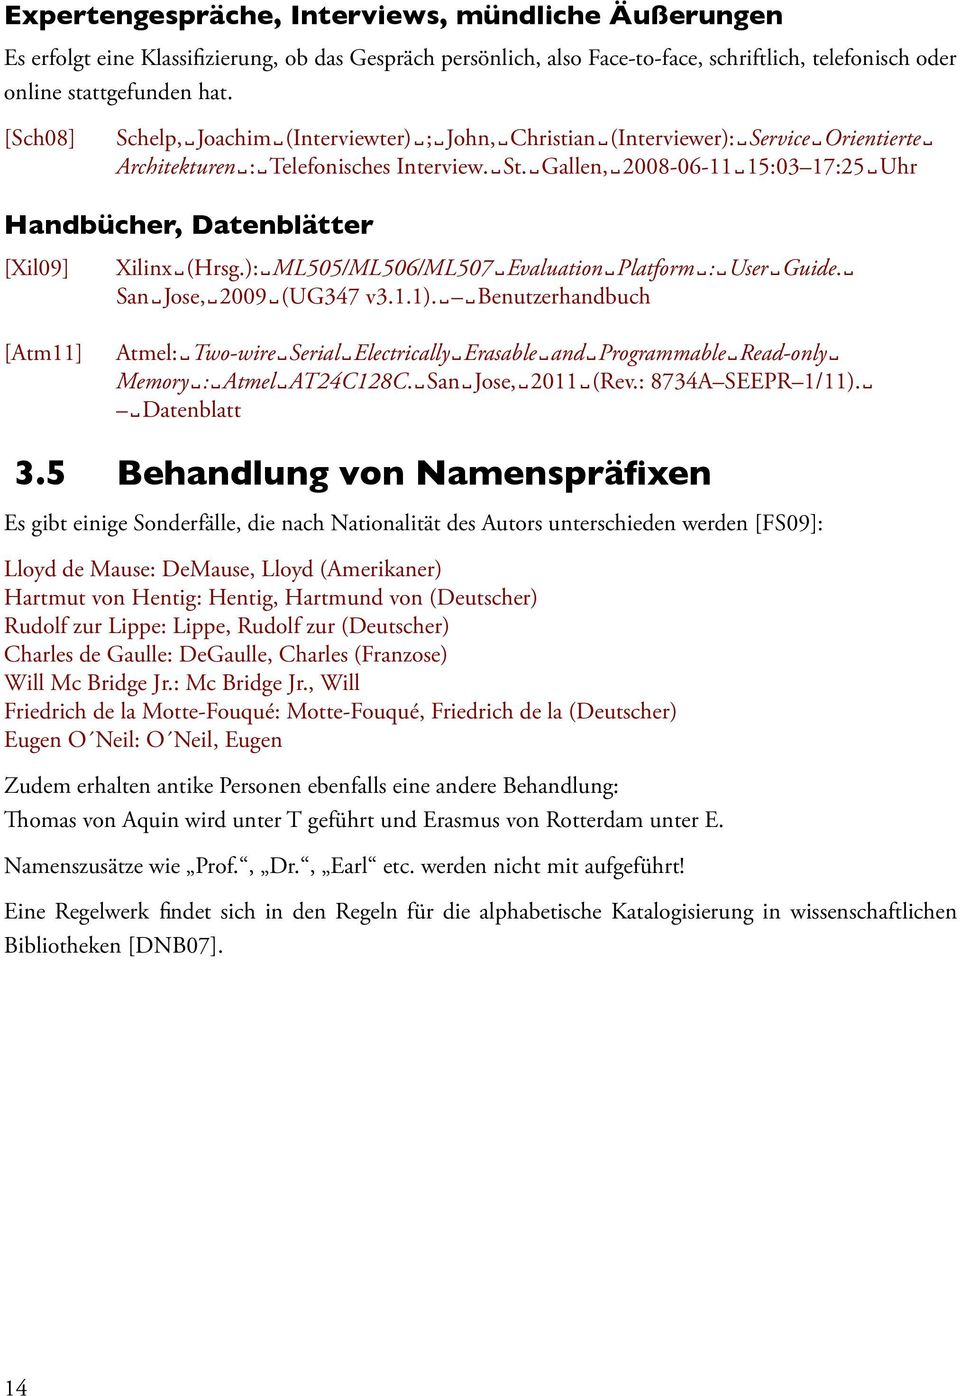 Gallen, 2008-06-11 15:03 17:25 Uhr Handbücher, Datenblätter [Xil09] [Atm11] Xilinx (Hrsg.): ML505/ML506/ML507 Evaluation Platform : User Guide. San Jose, 2009 (UG347 v3.1.1).